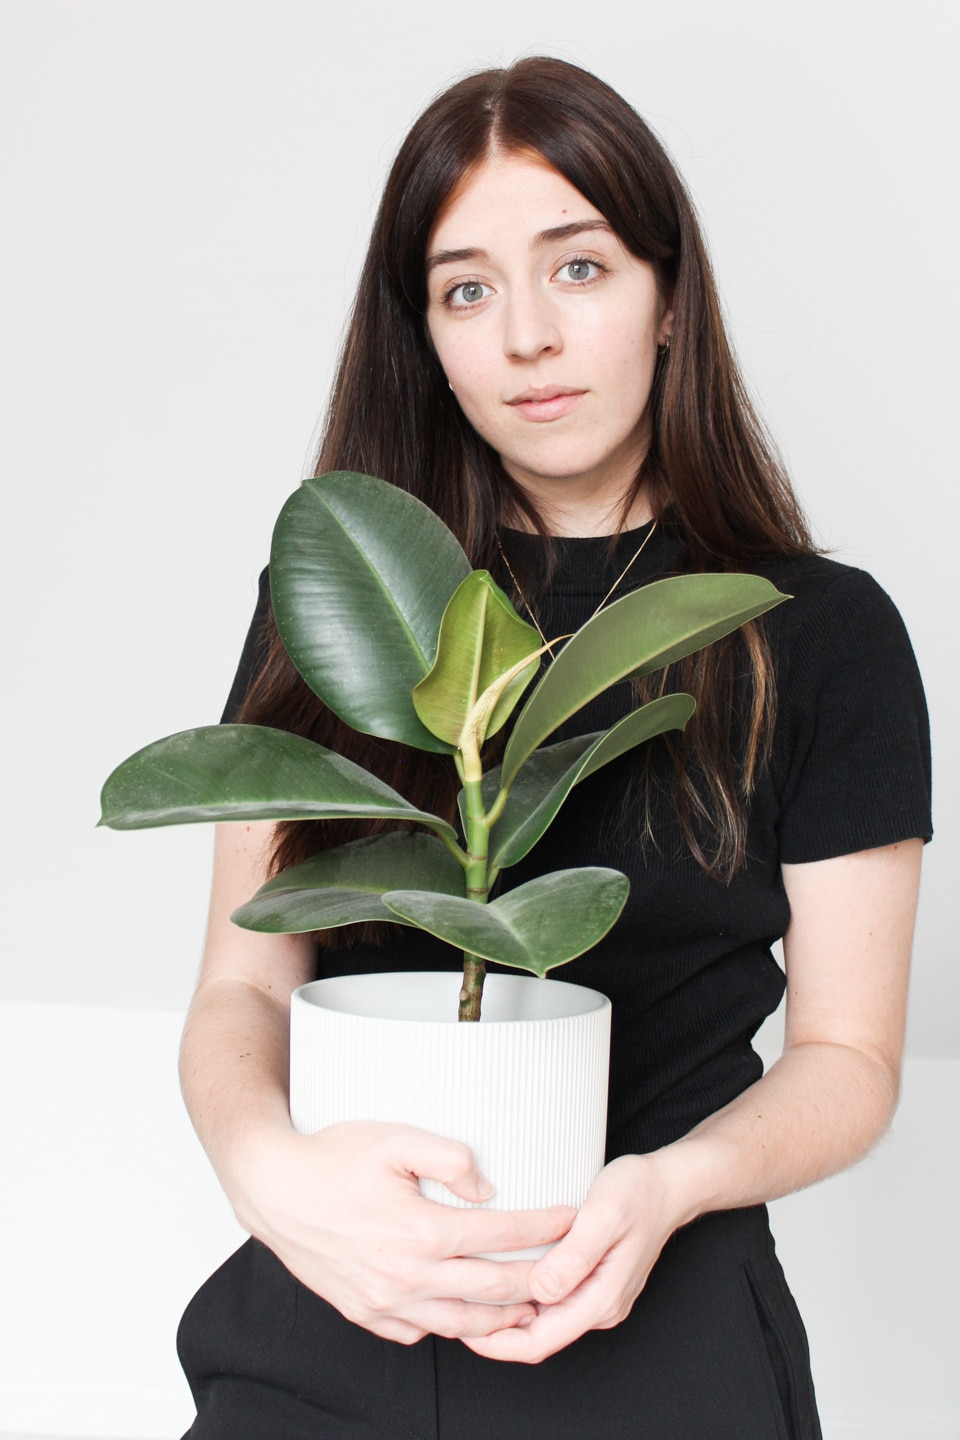 Besma holding rubber plant